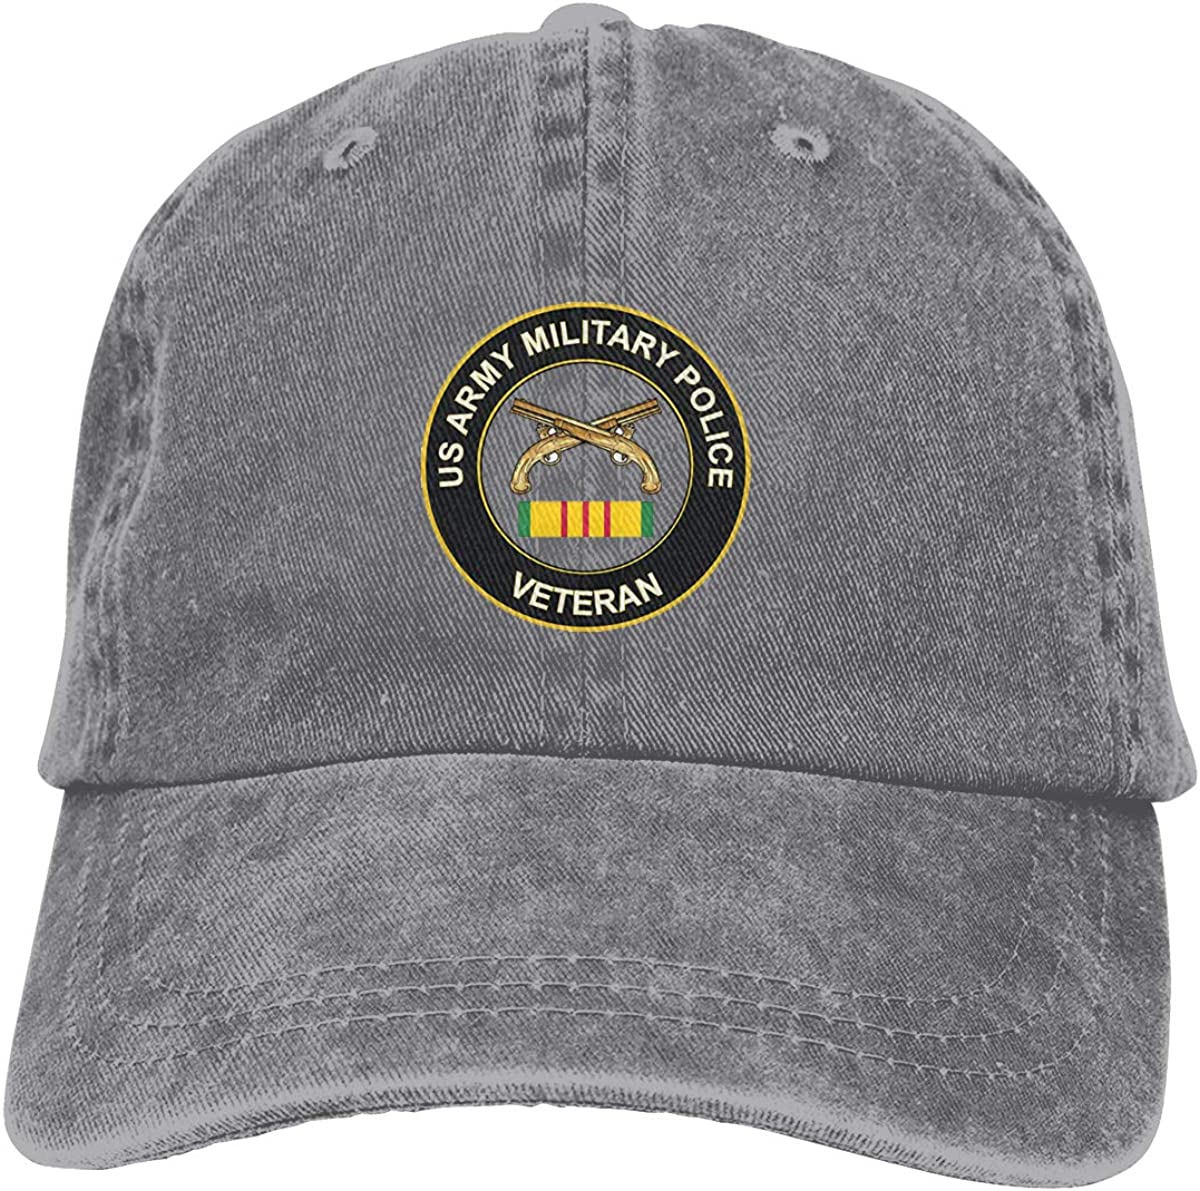 ORYISGAD Army Military Police Vietnam Veteran Sports Cap for Mens and Womens